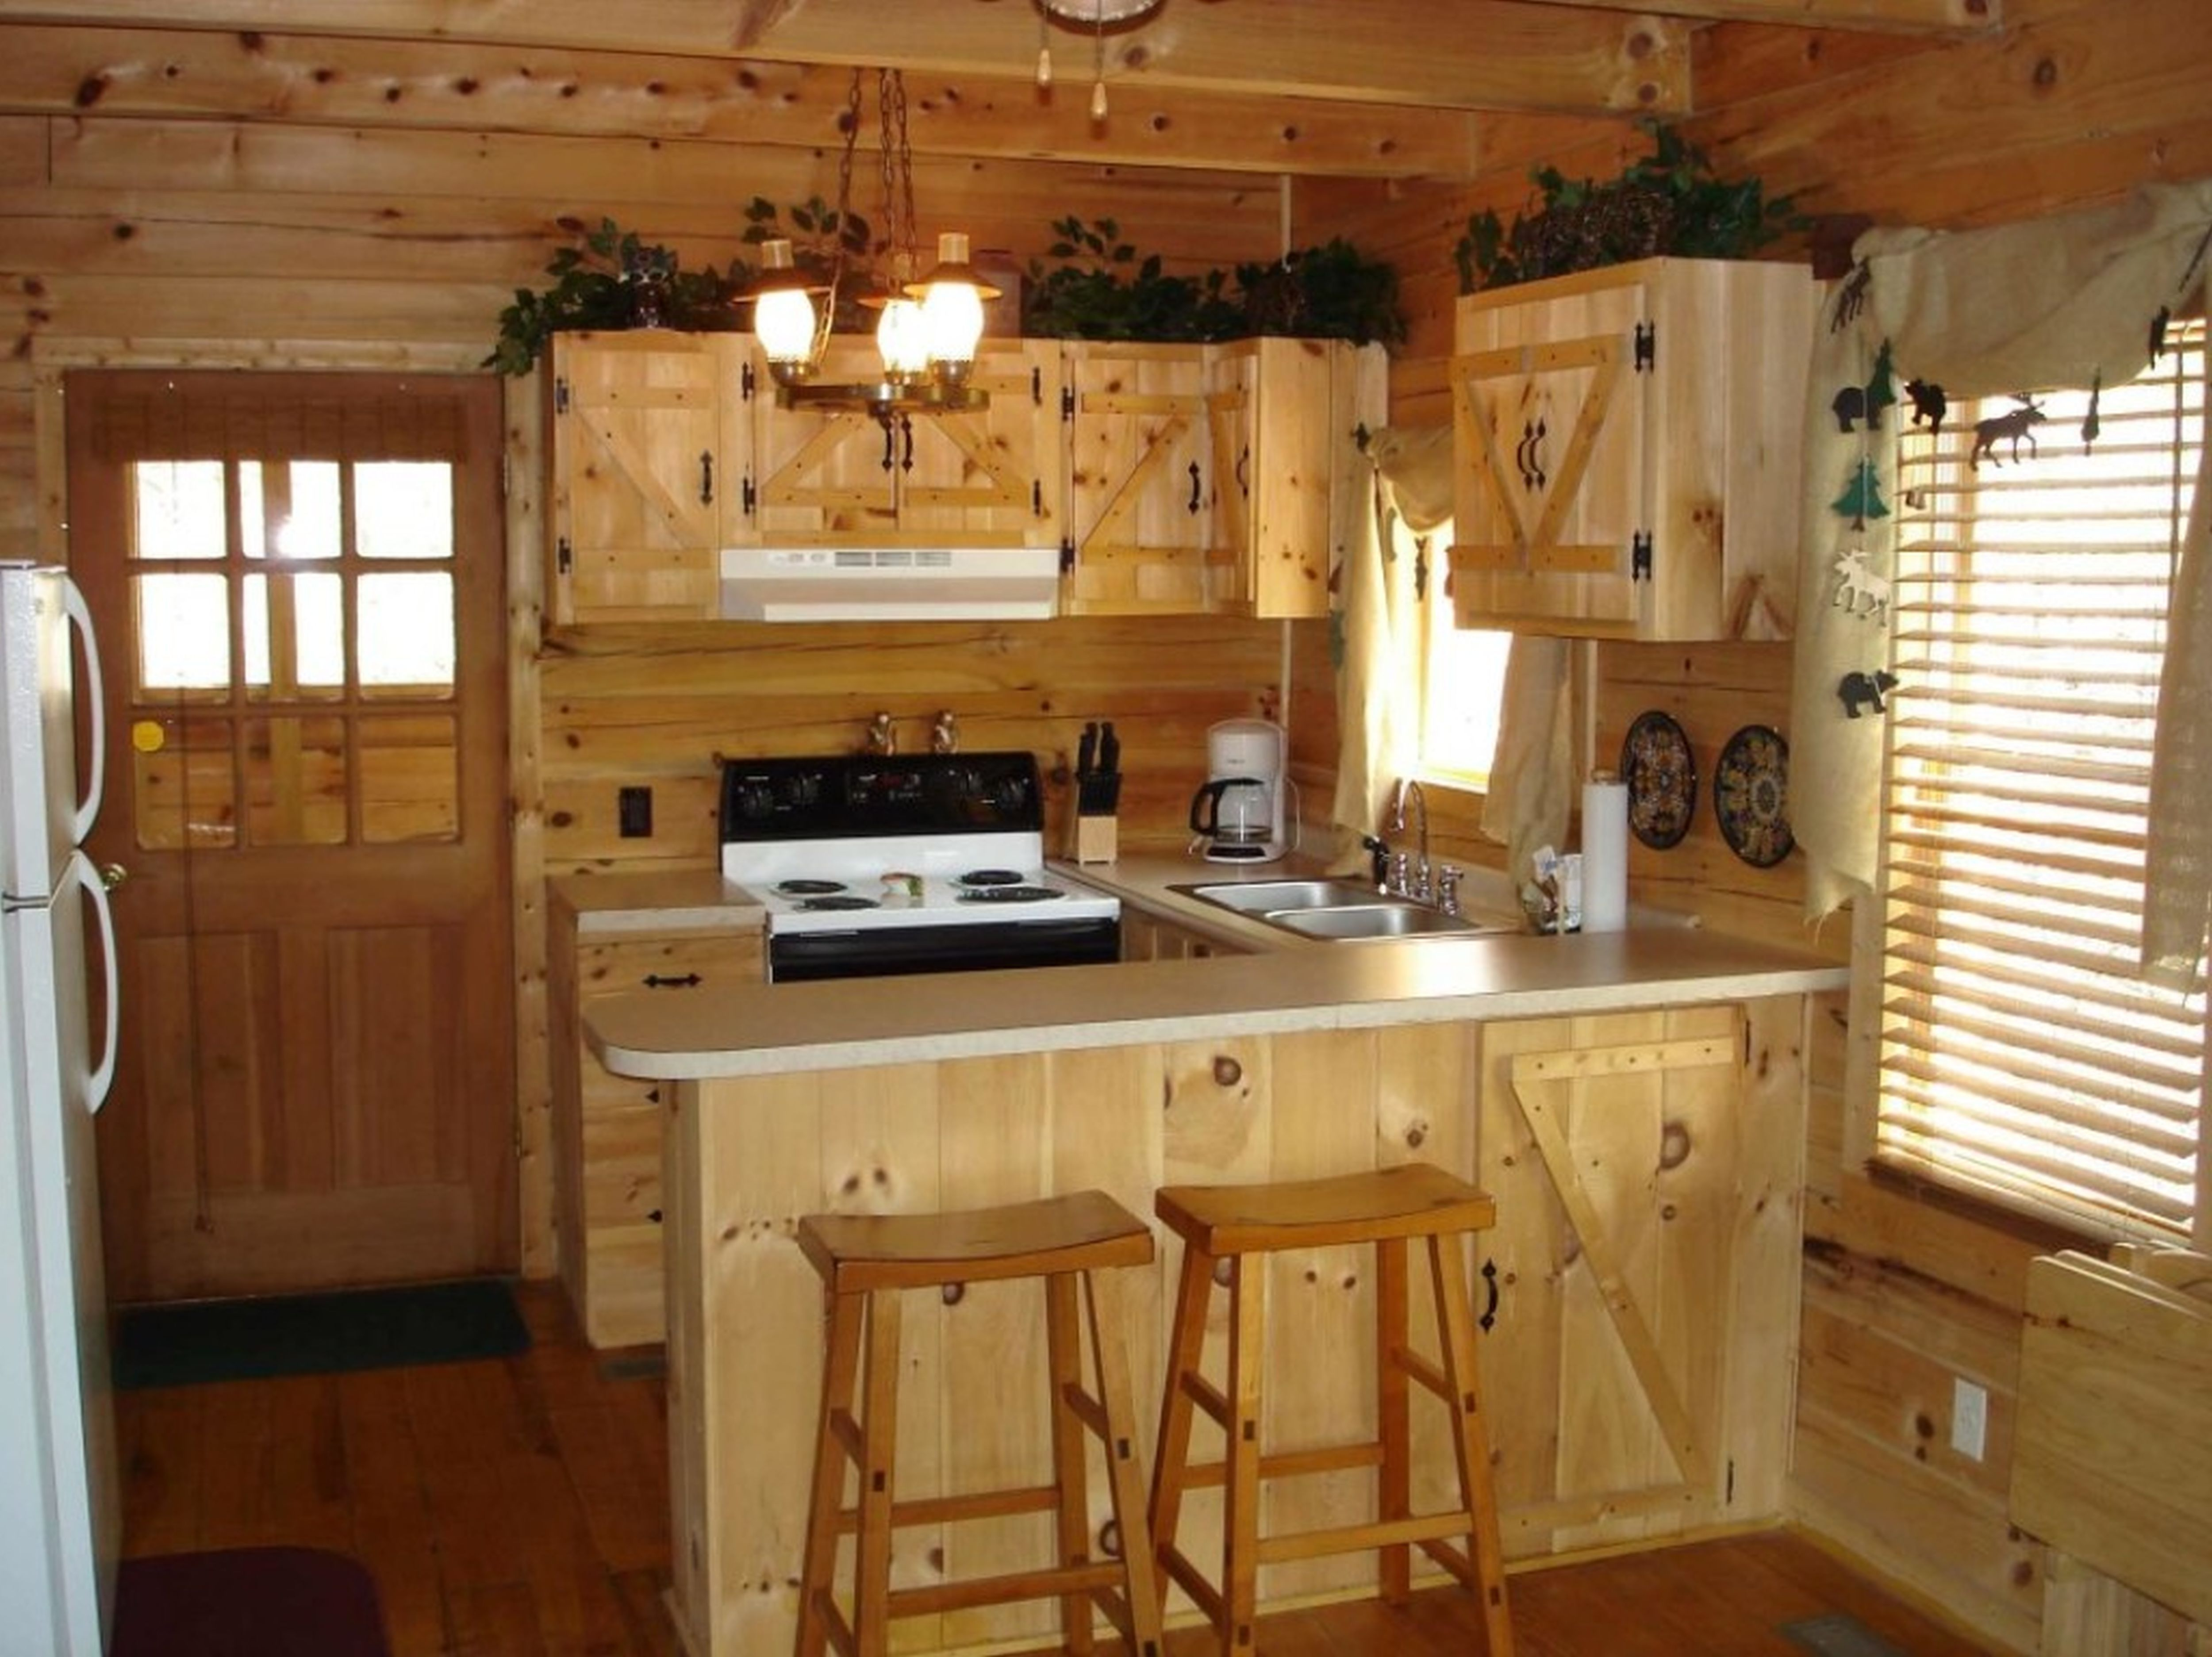 Cute kitchen cabinets for small space creativity interesting